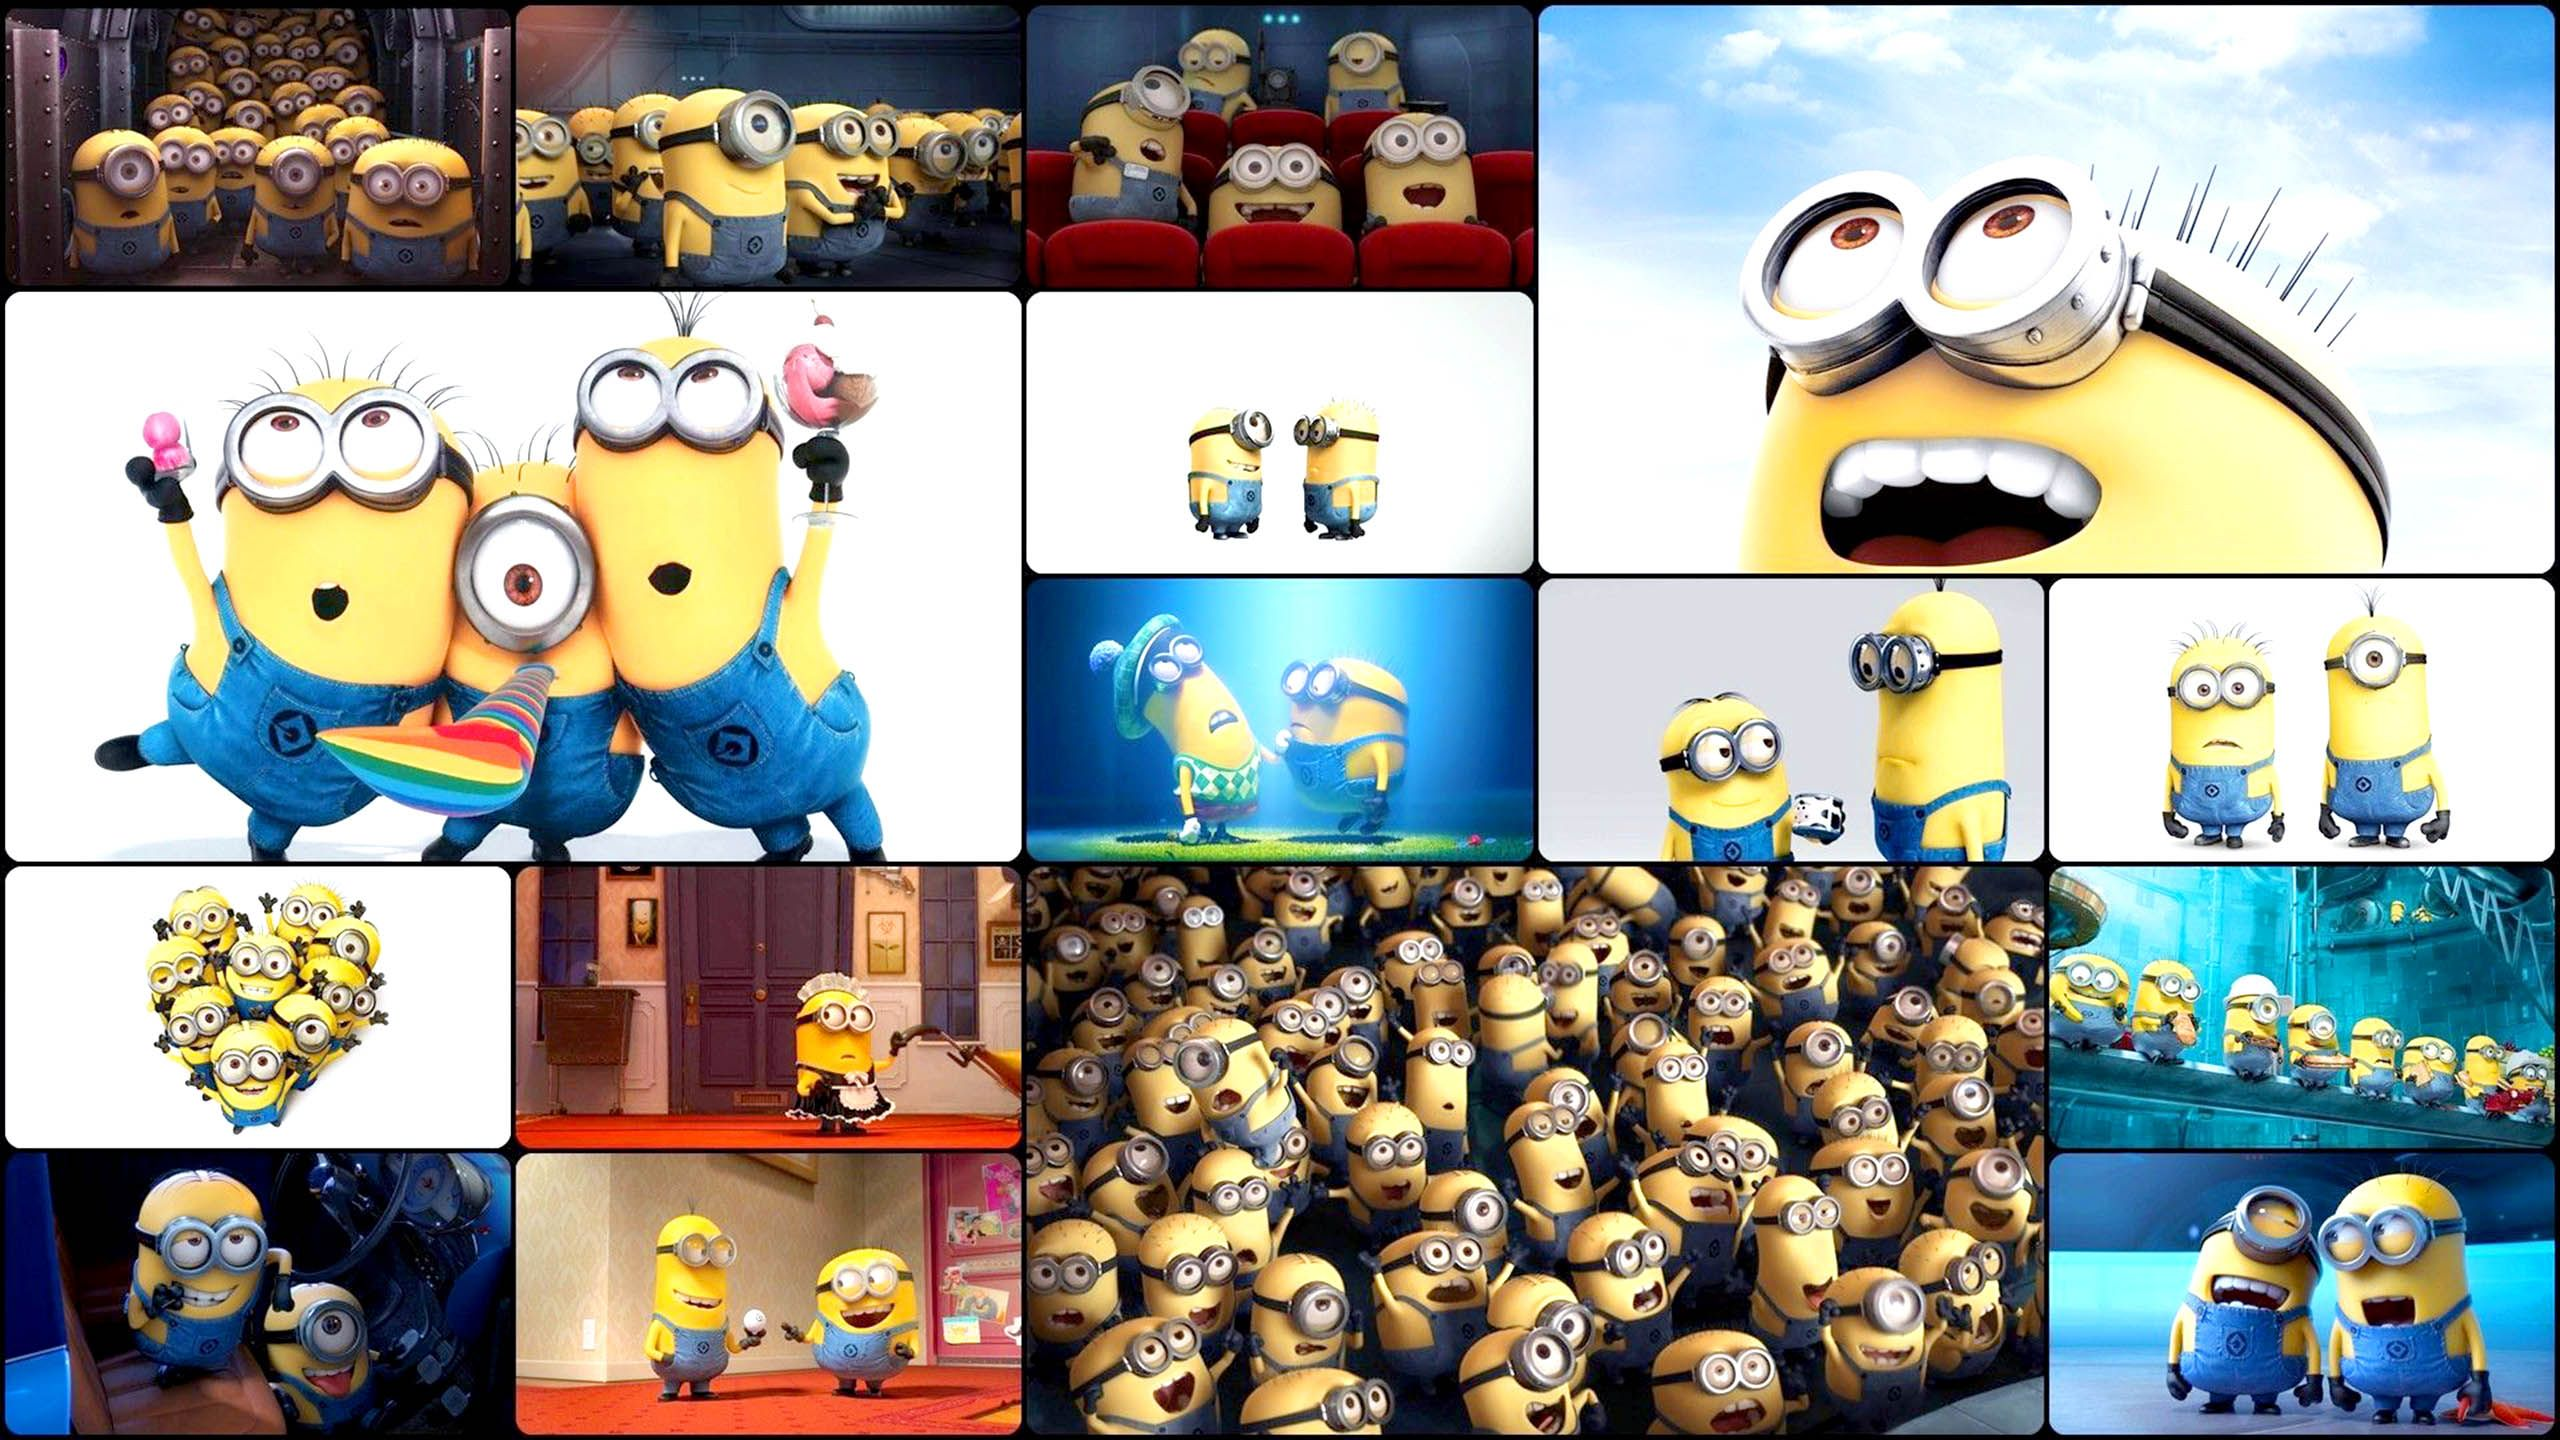 minions funny looking mother - http://1080wallpaper.net/minions-funny-looking-mother.html